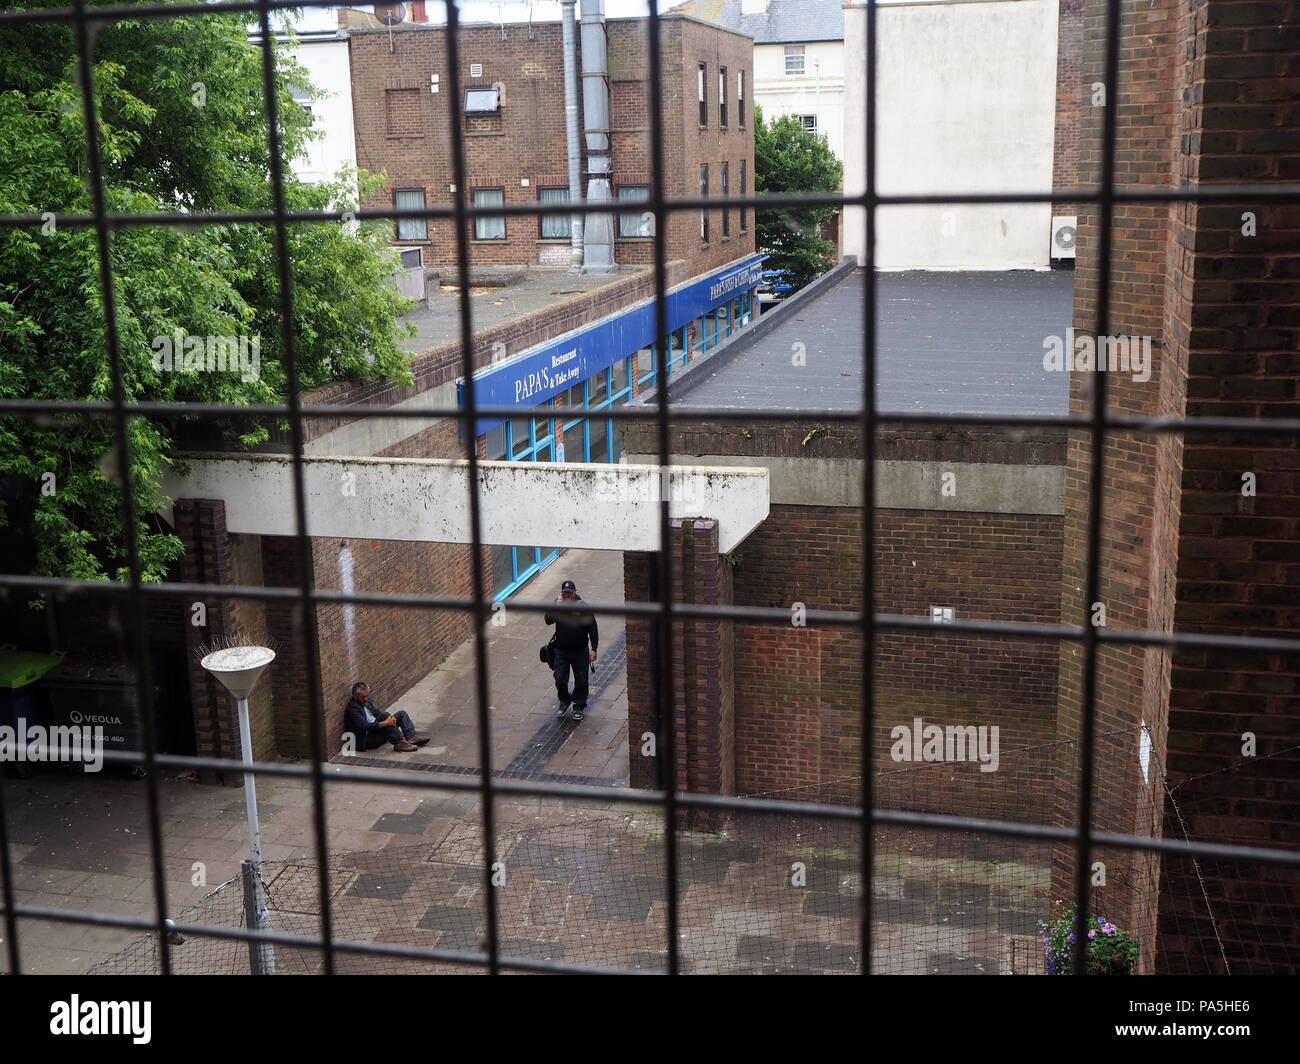 Person ignoring homeless person sitting in walkway begging - Stock Image